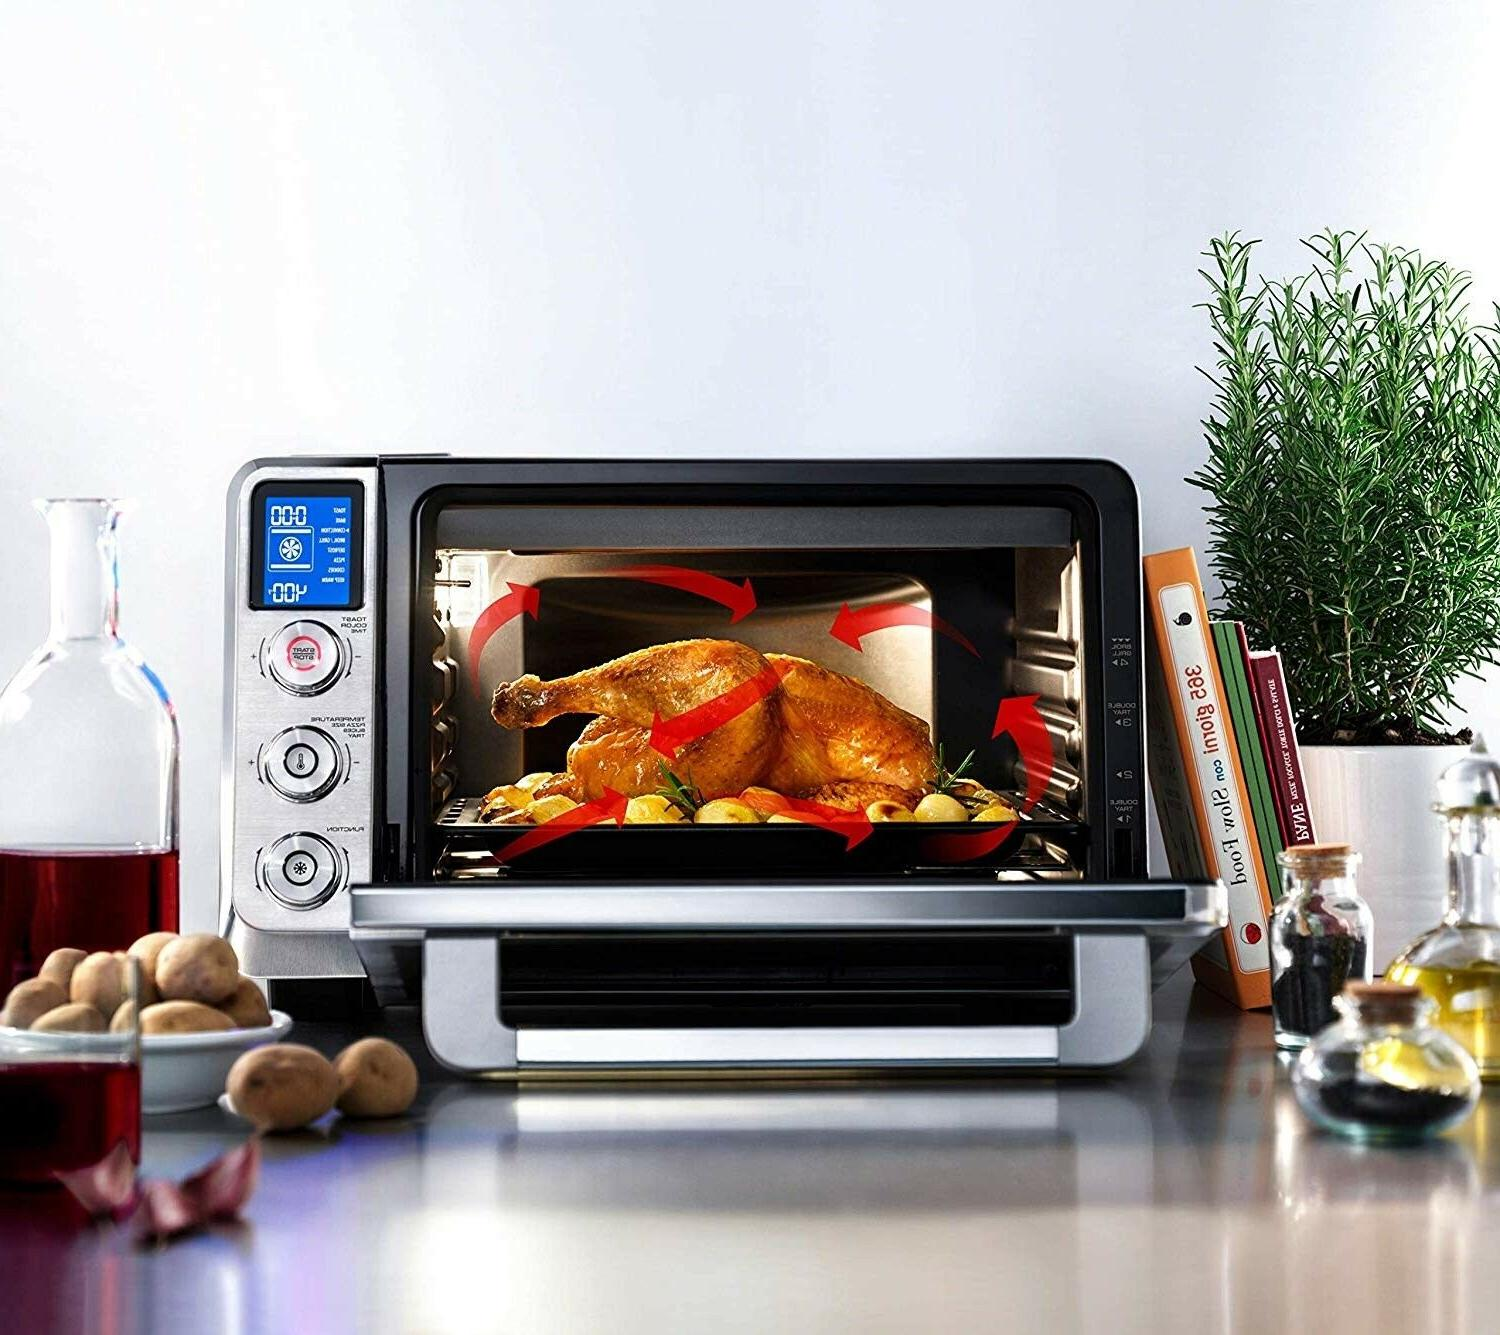 NEW Stainless Digital Oven